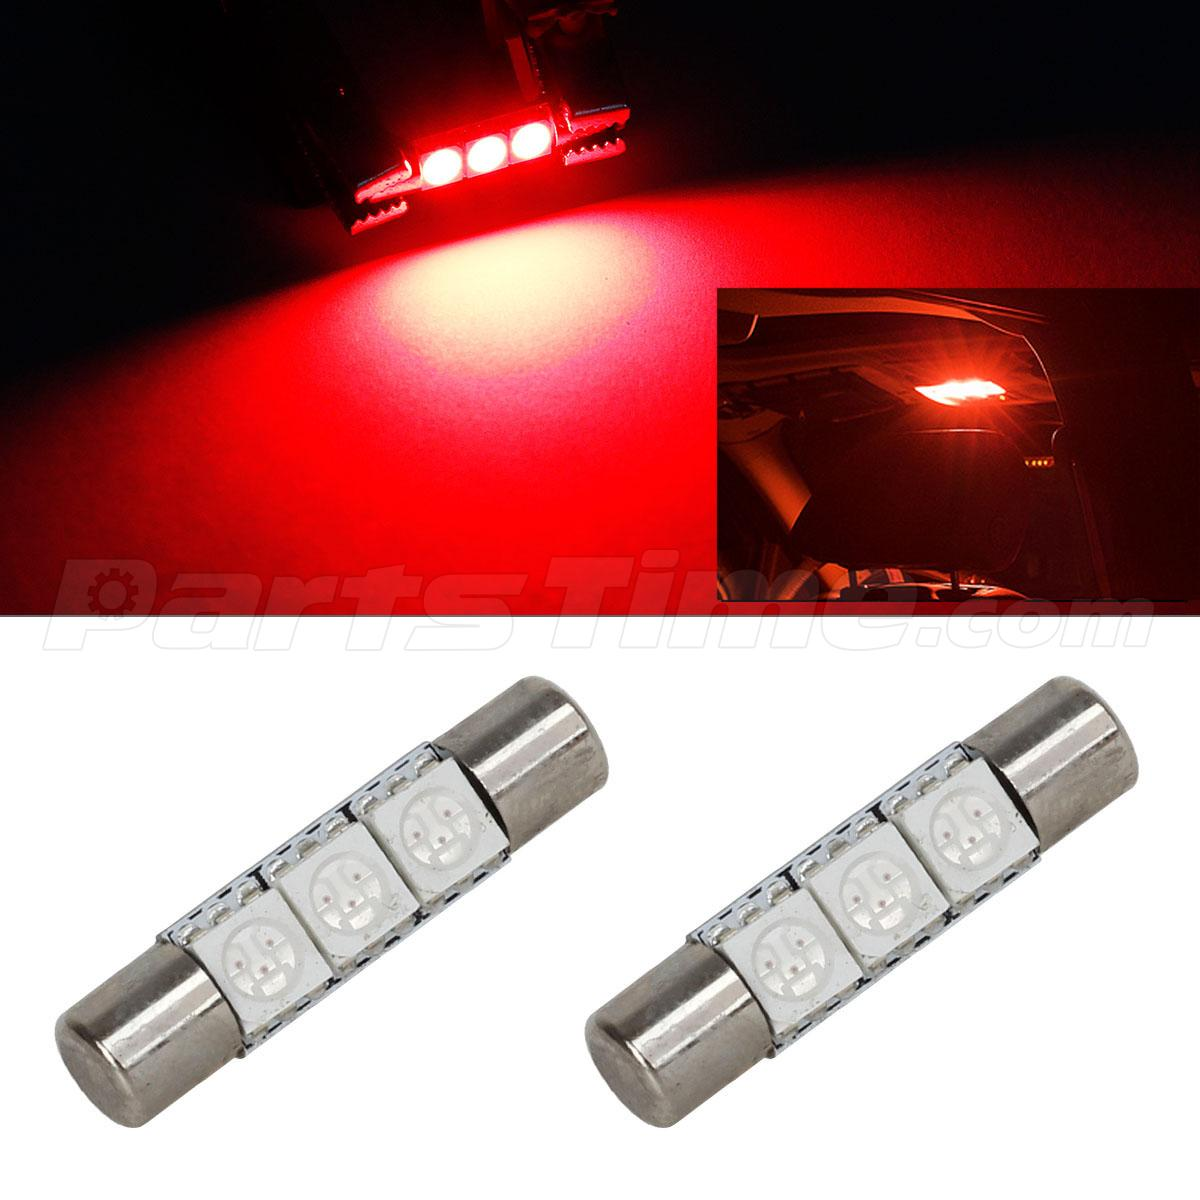 2pcs red 3smd 5050 led bulbs car interior vanity mirror lights 6641 12v ebay. Black Bedroom Furniture Sets. Home Design Ideas